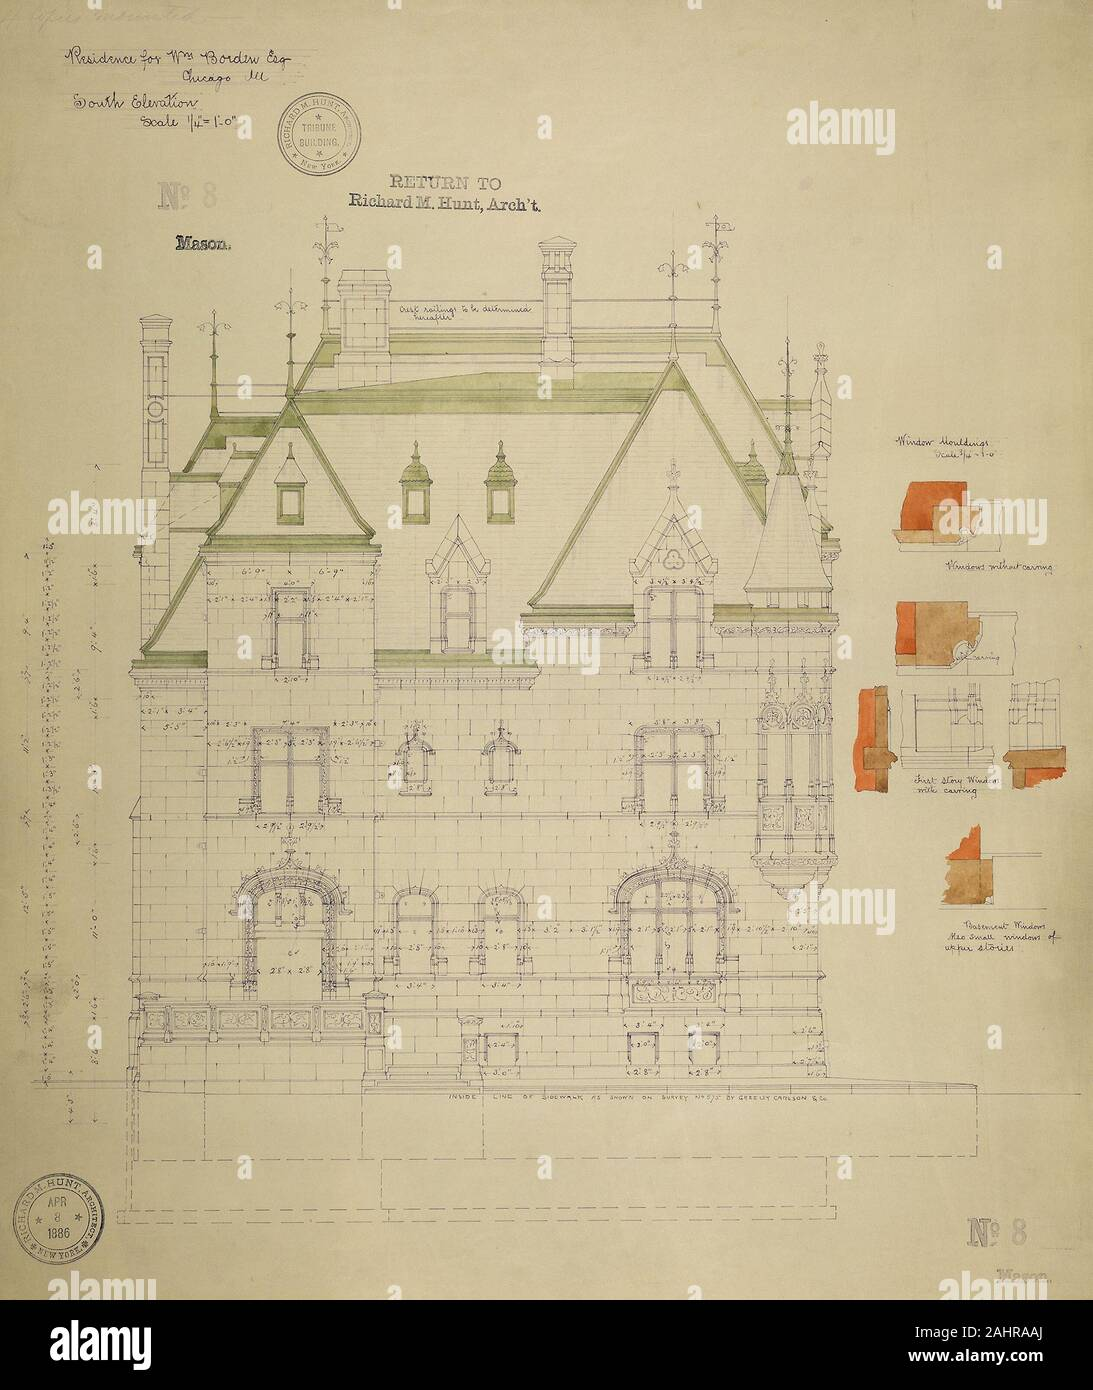 Richard Morris Hunt (Architect). William Borden Residence, Chicago, Illinois, South Elevation. 1886. Chicago. Watercolor on hectographic print, mounted on linen Stock Photo